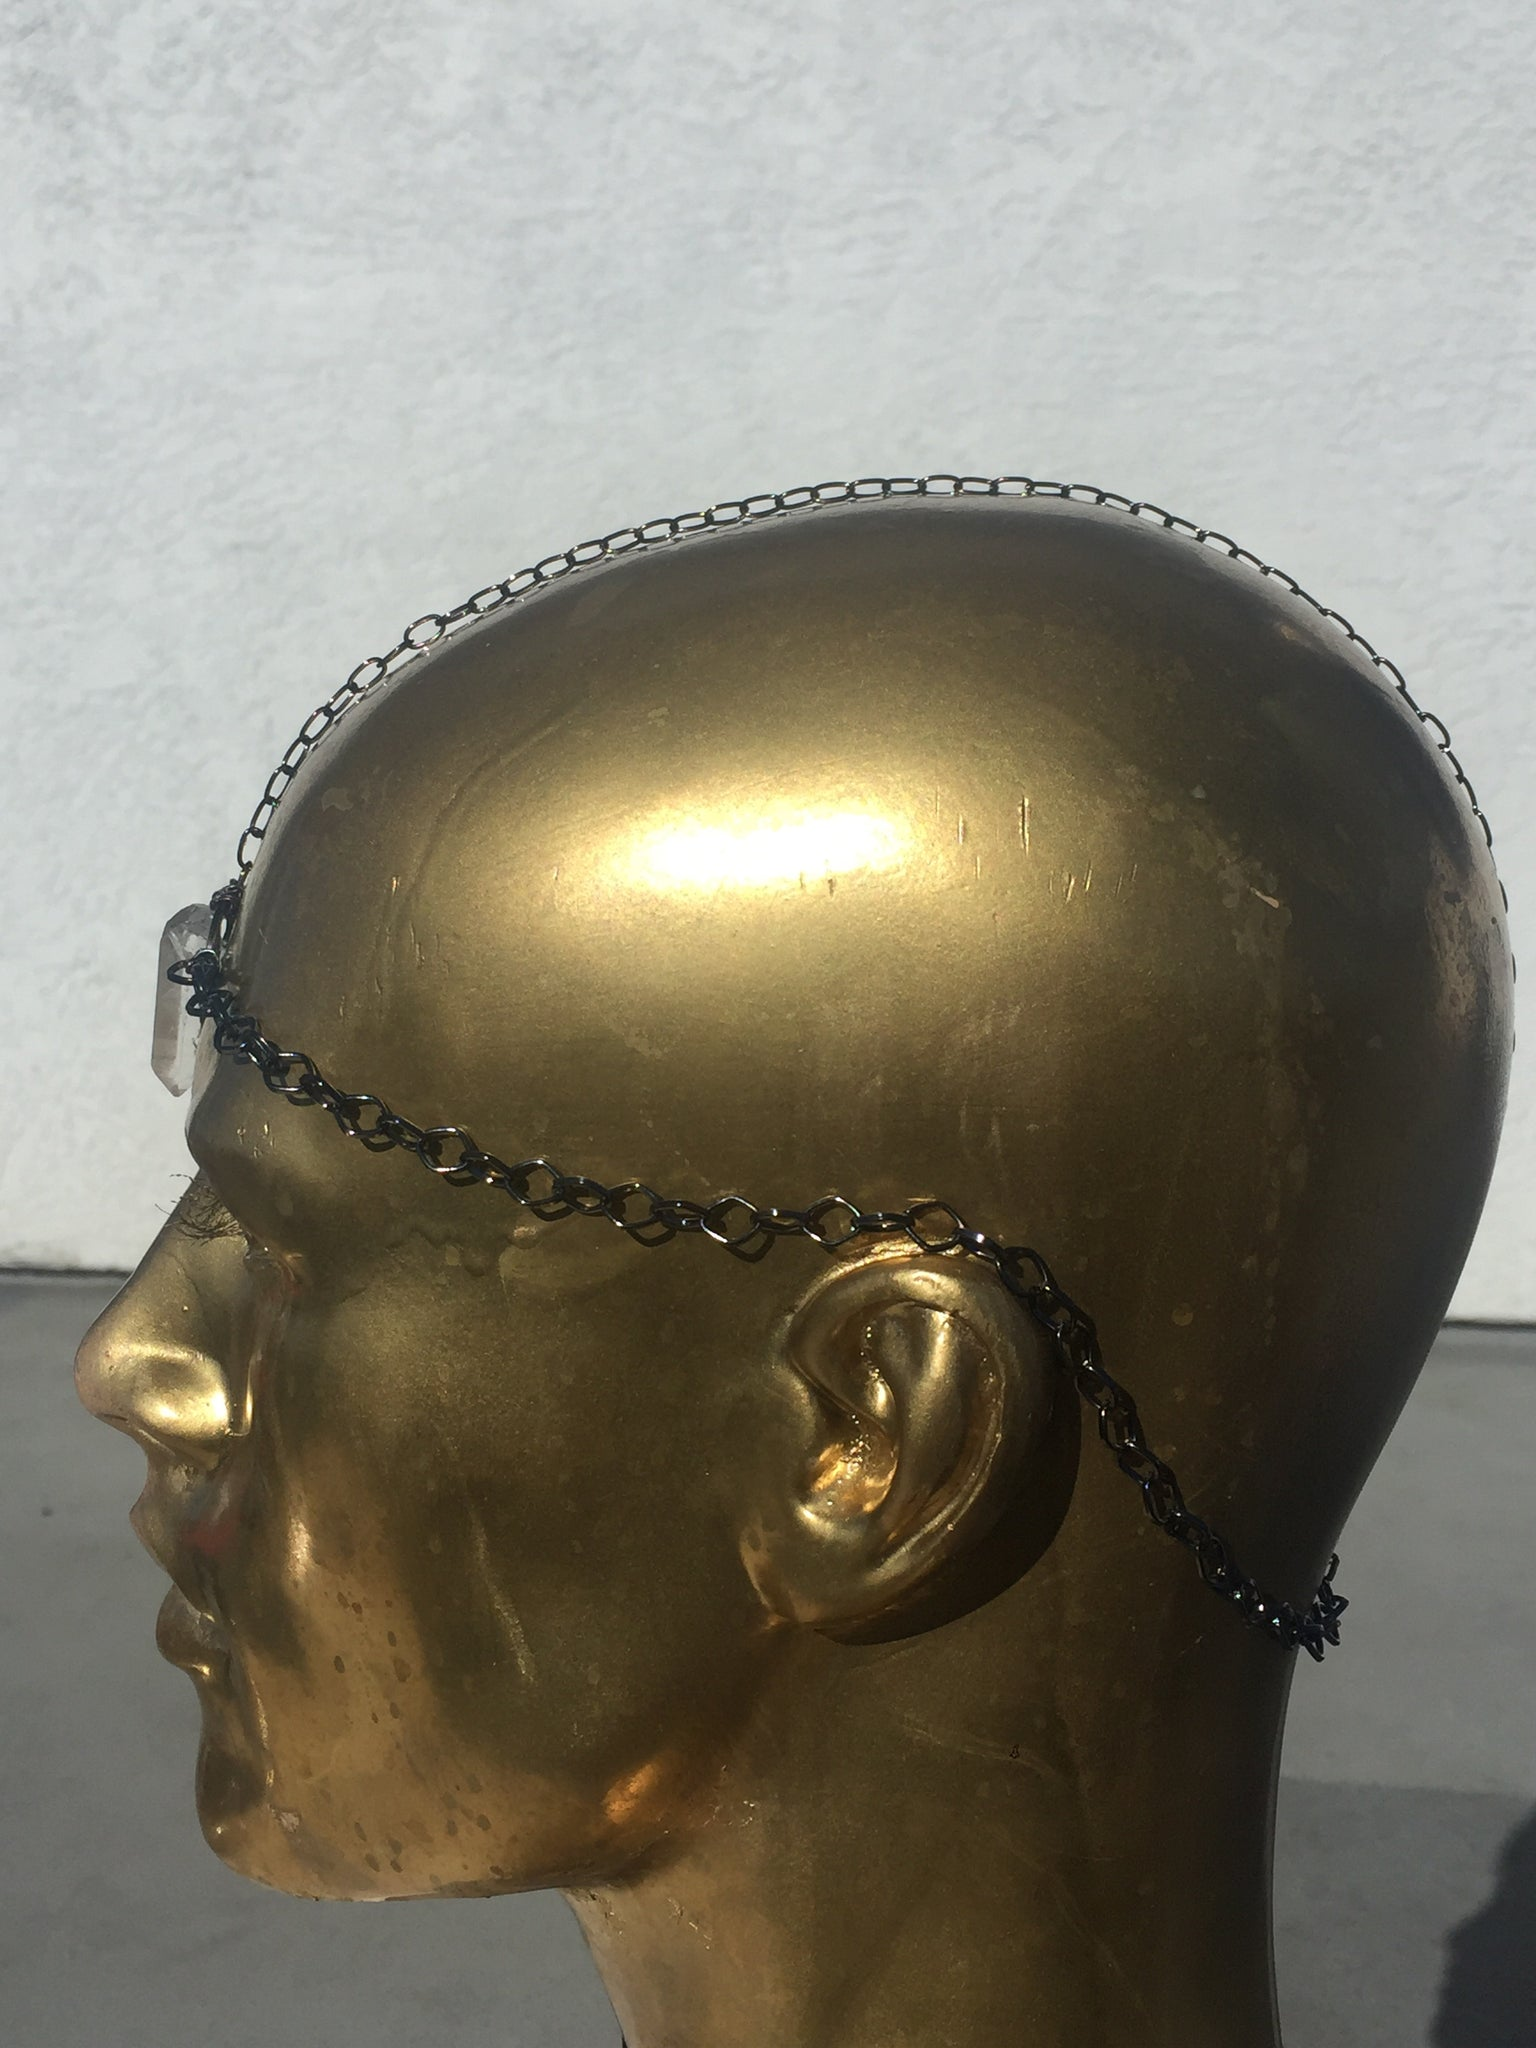 Quartz thirdeye headchain